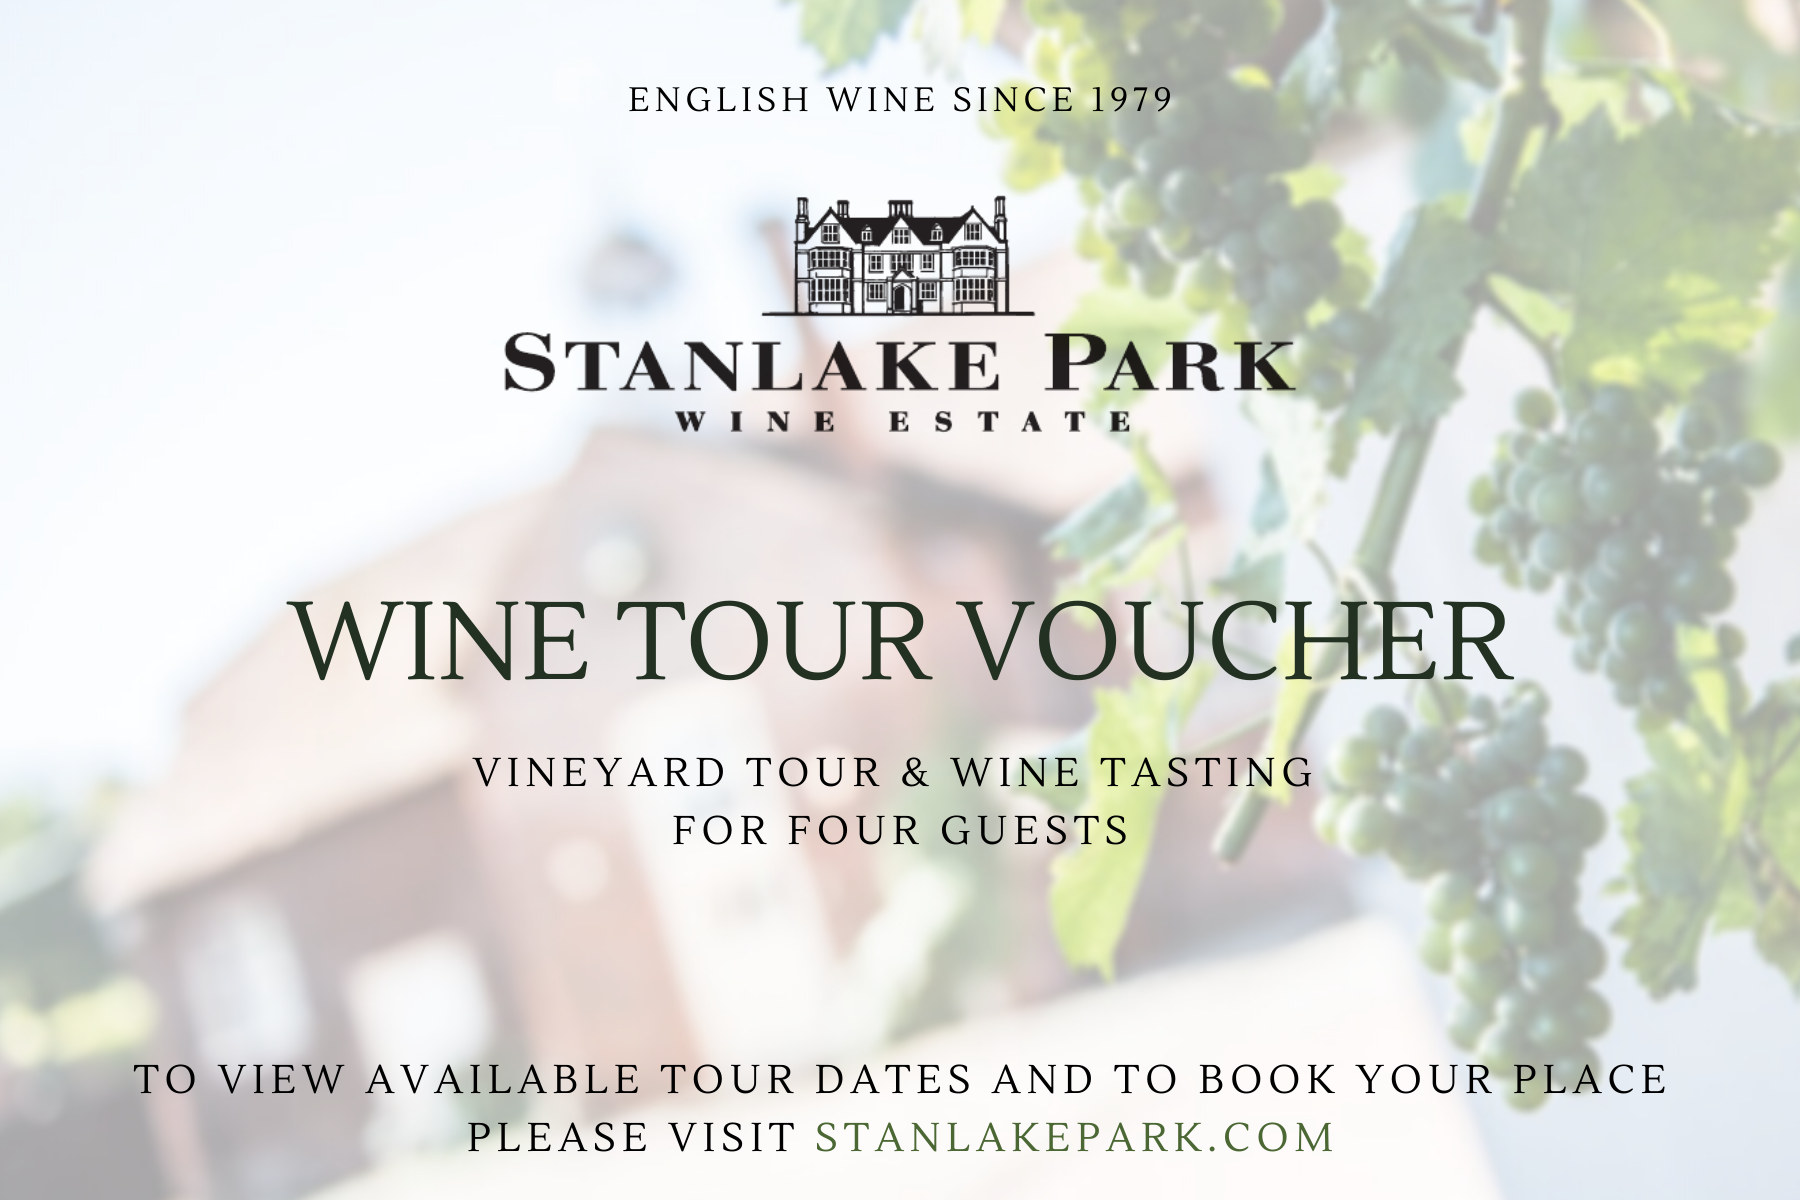 Wine Tour Voucher for Four